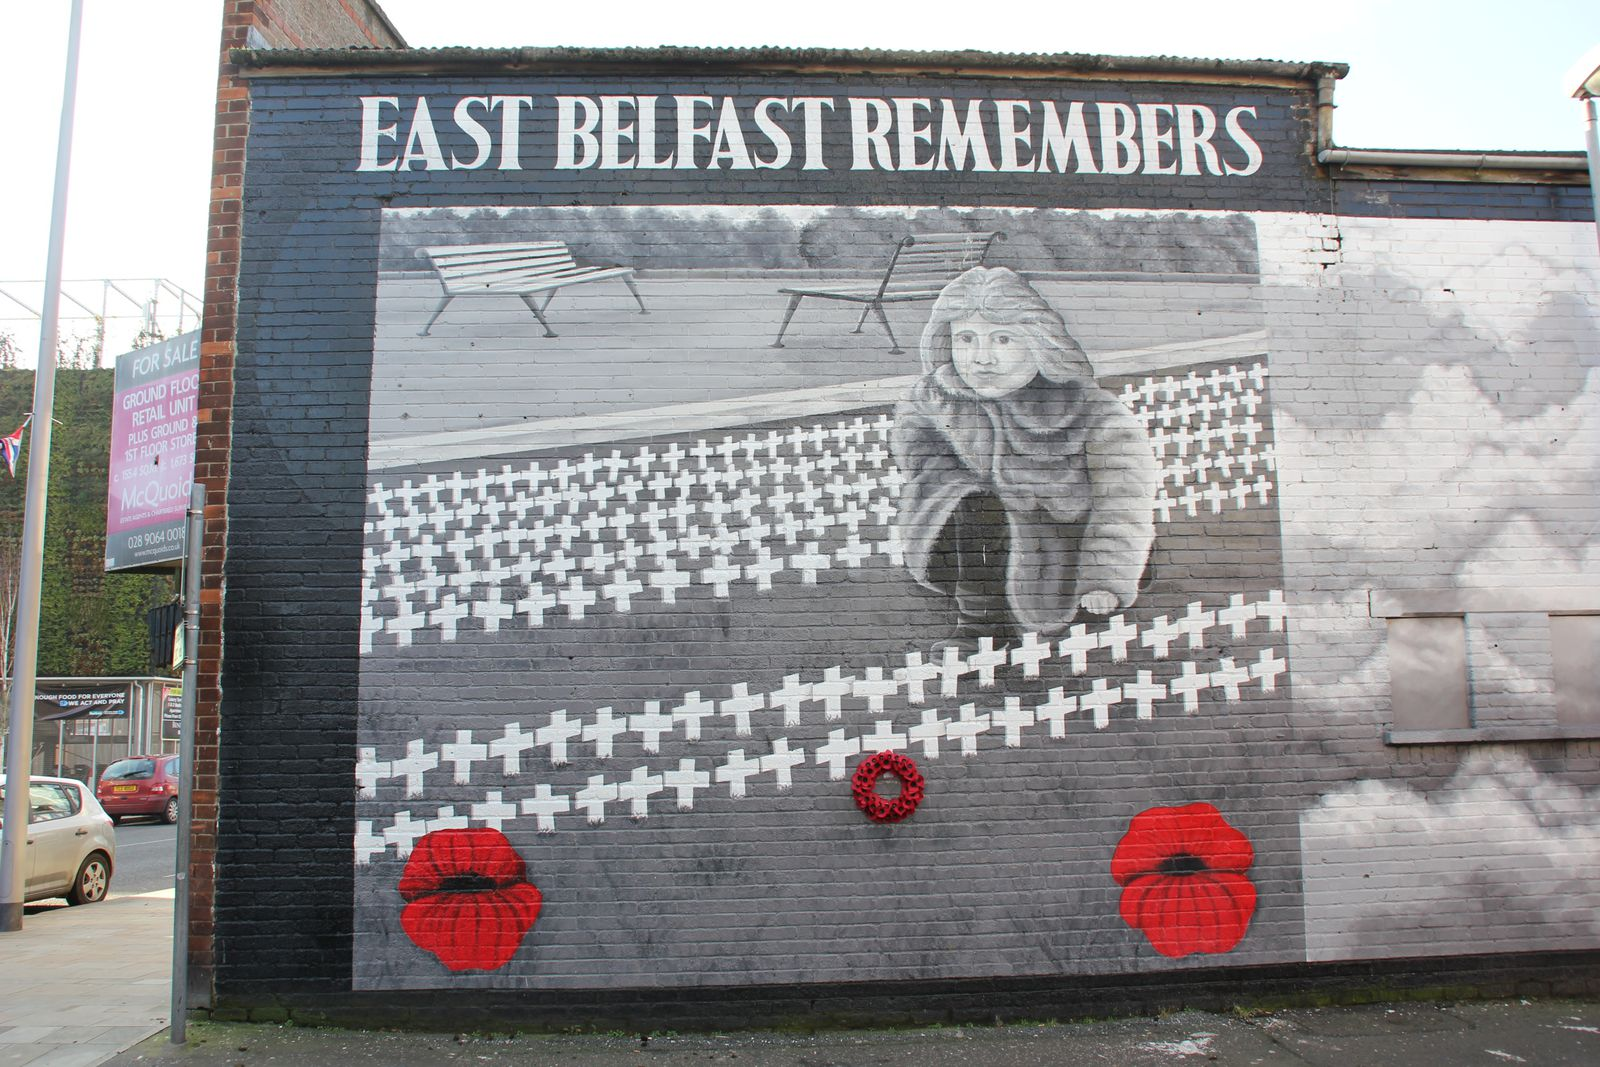 436) Newtownards Road, East Belfast